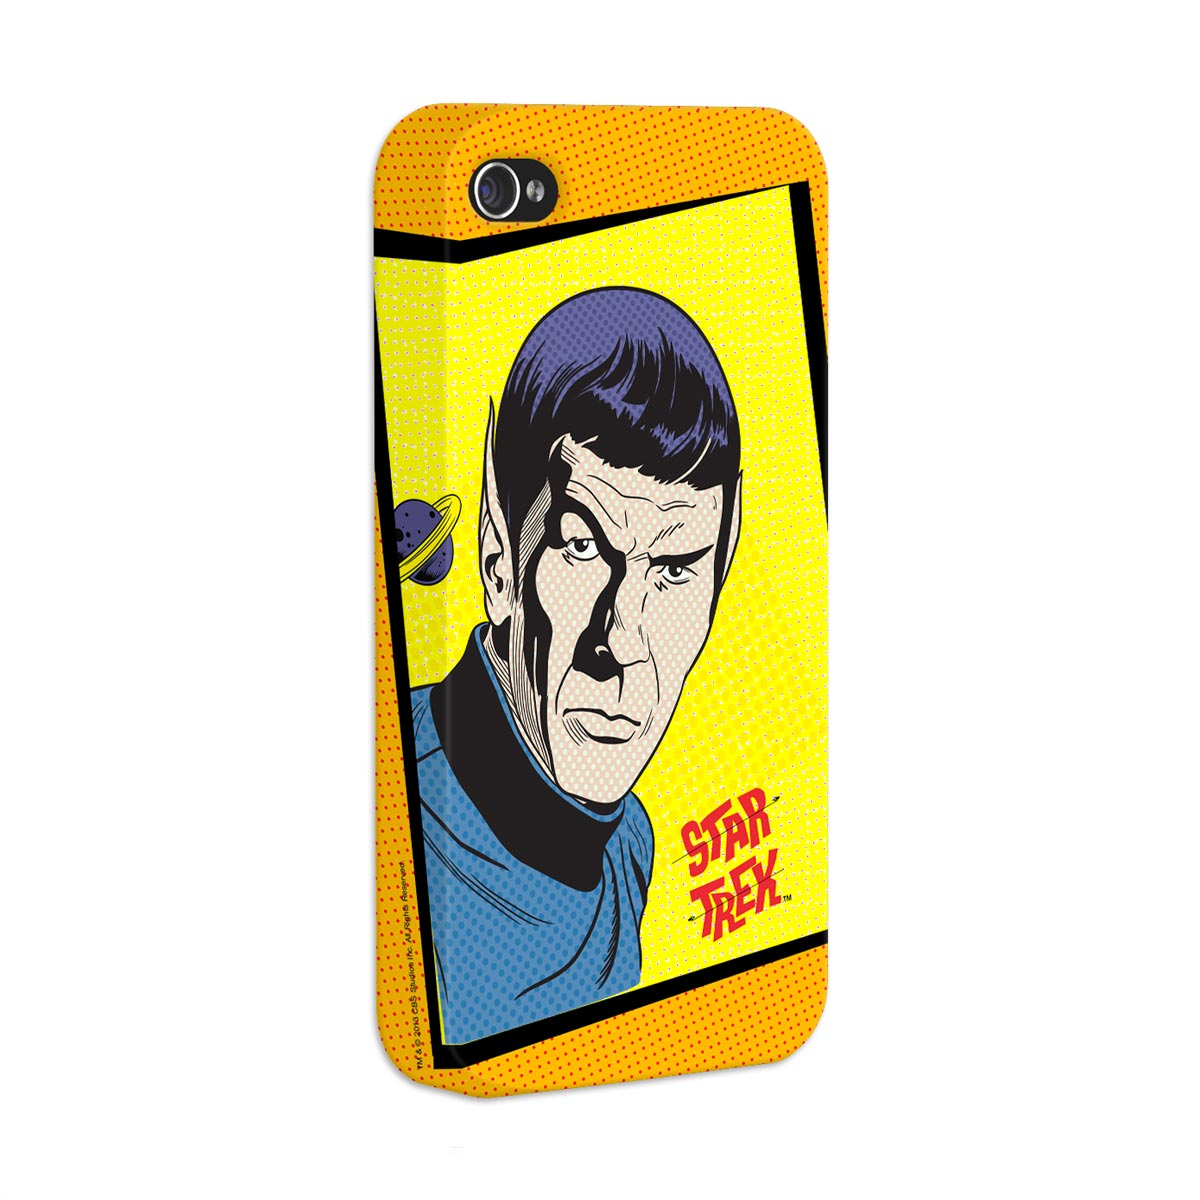 Capa de iPhone 4/4S Star Trek Face Spock